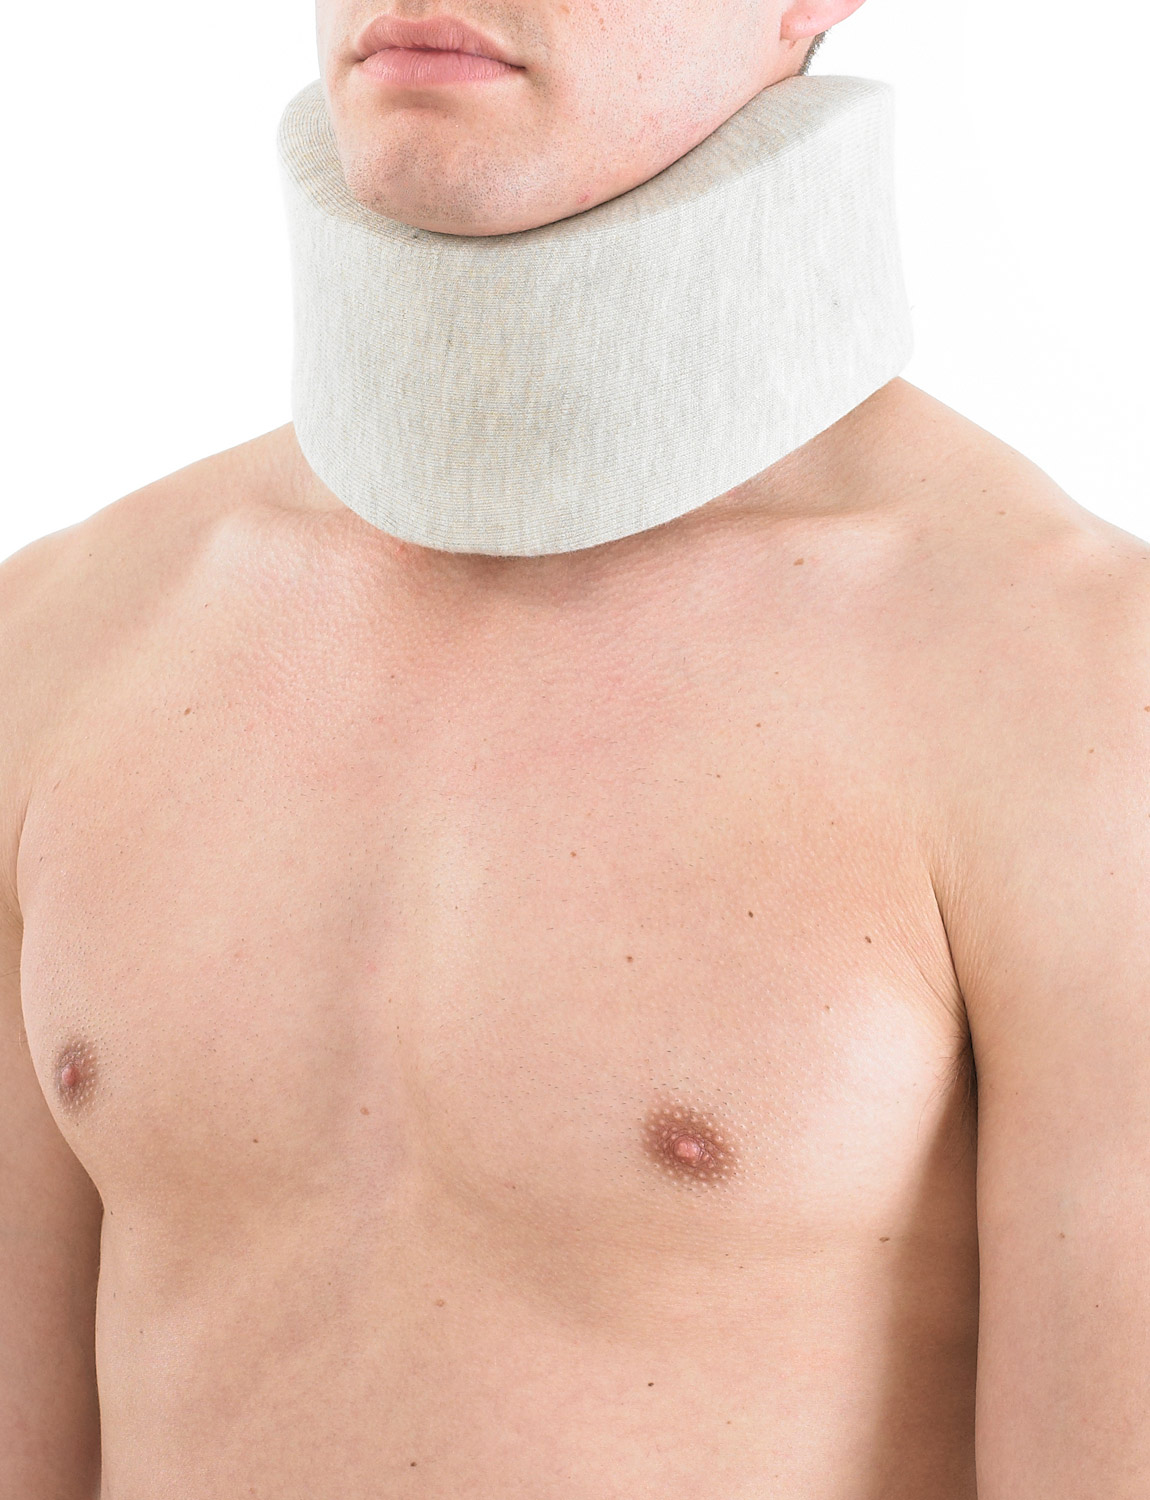 203 - SOFT COLLAR  Soft Collar has been specifically designed to help provide flexible support and cushioning around the neck and to reduce pressure through the cervical vertebra. Useful in the early stages of neck injury, the collar helps to allow cervical musculature to rest and recover.